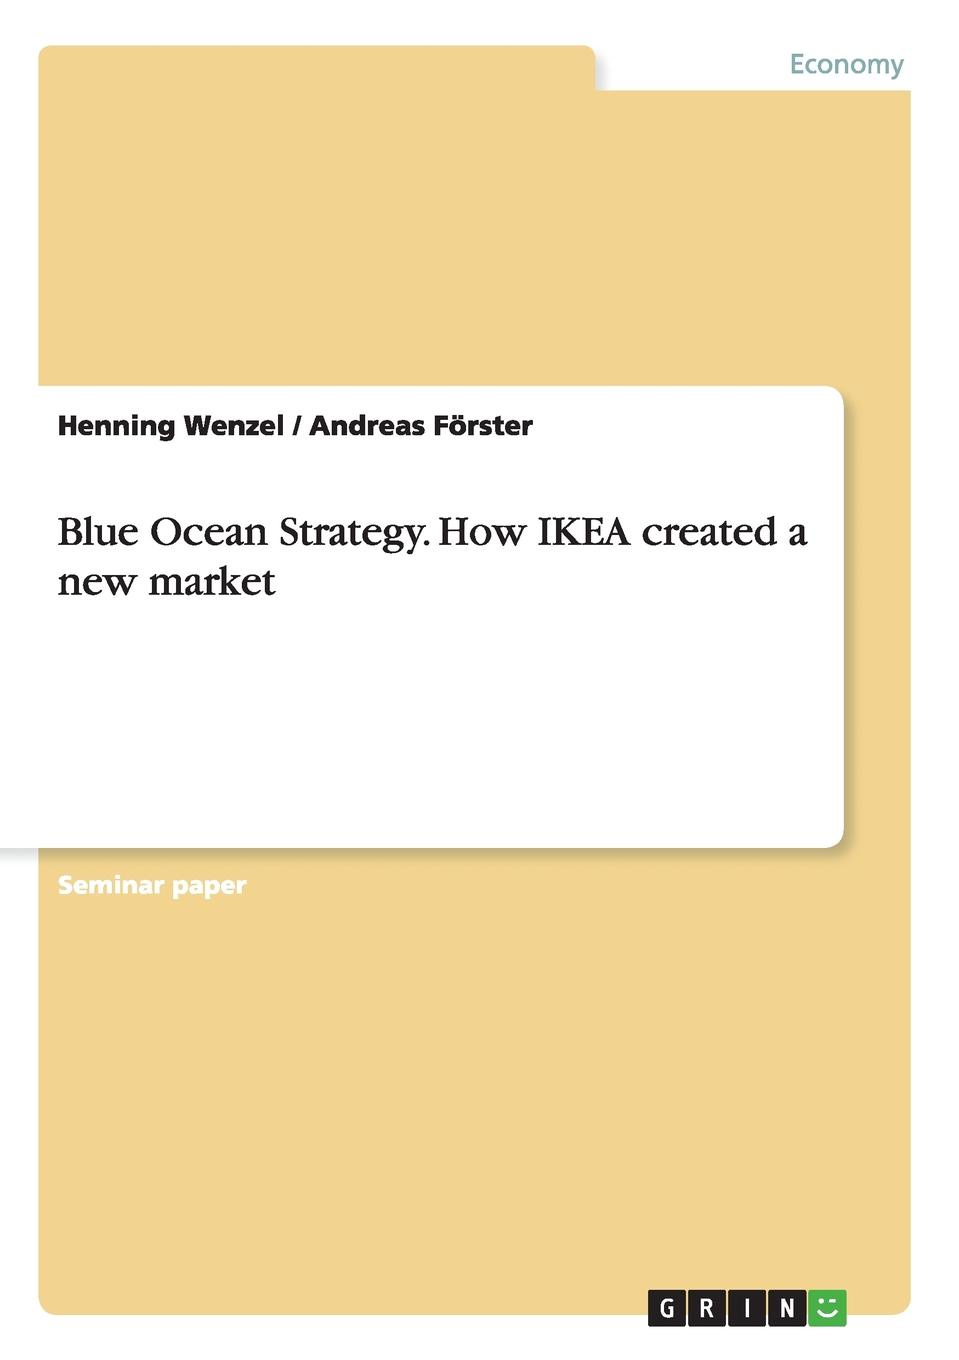 Andreas Förster, Henning Wenzel Blue Ocean Strategy. How IKEA created a new market joe calloway never by chance aligning people and strategy through intentional leadership